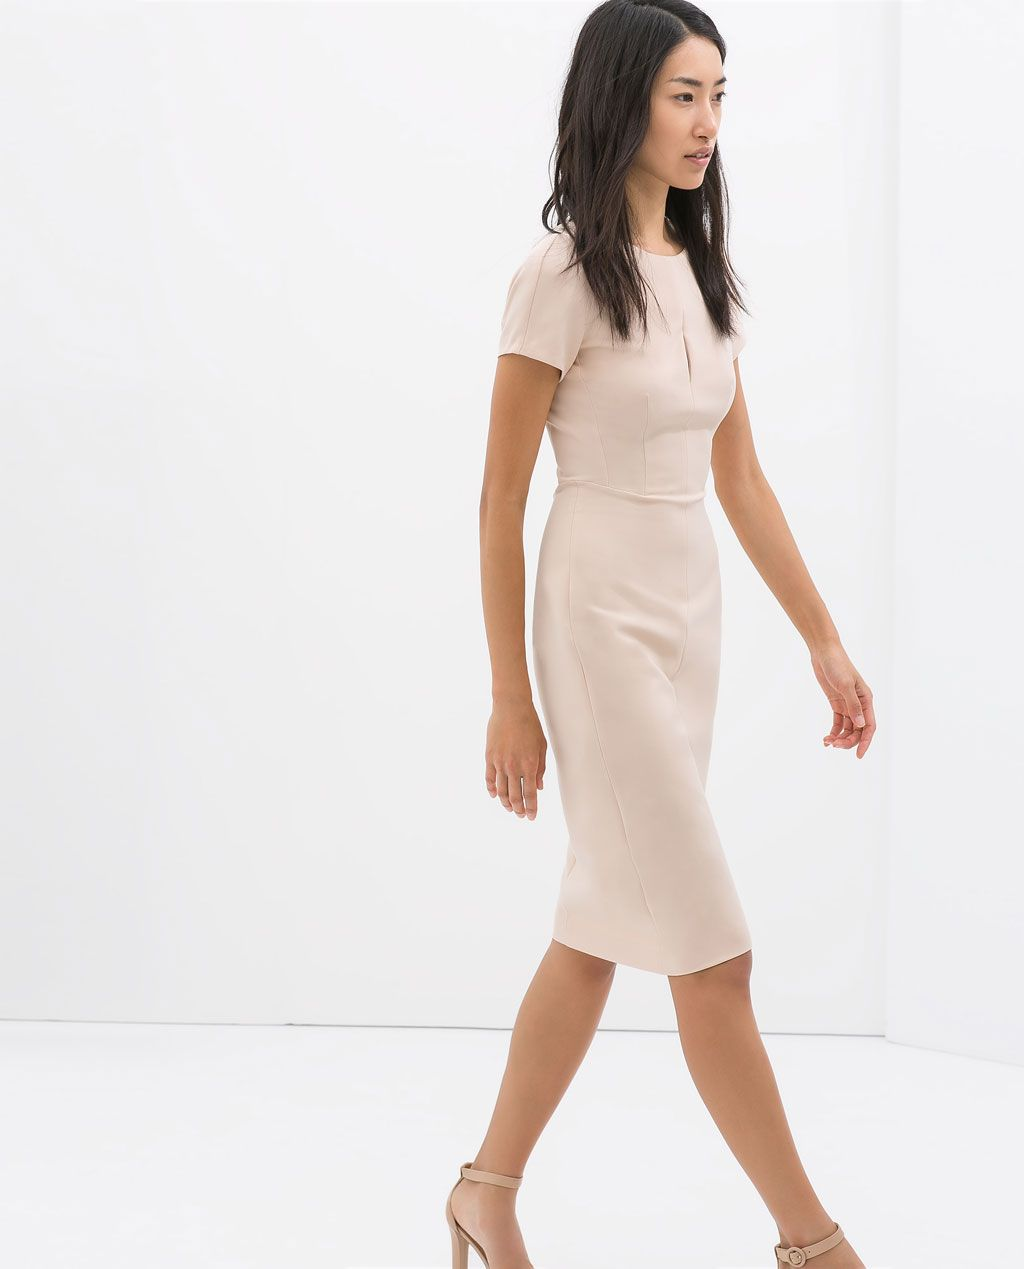 d1bef016 Nude SHIFT DRESS from Zara $79.90 | Spring Wish List in 2019 | Zara ...